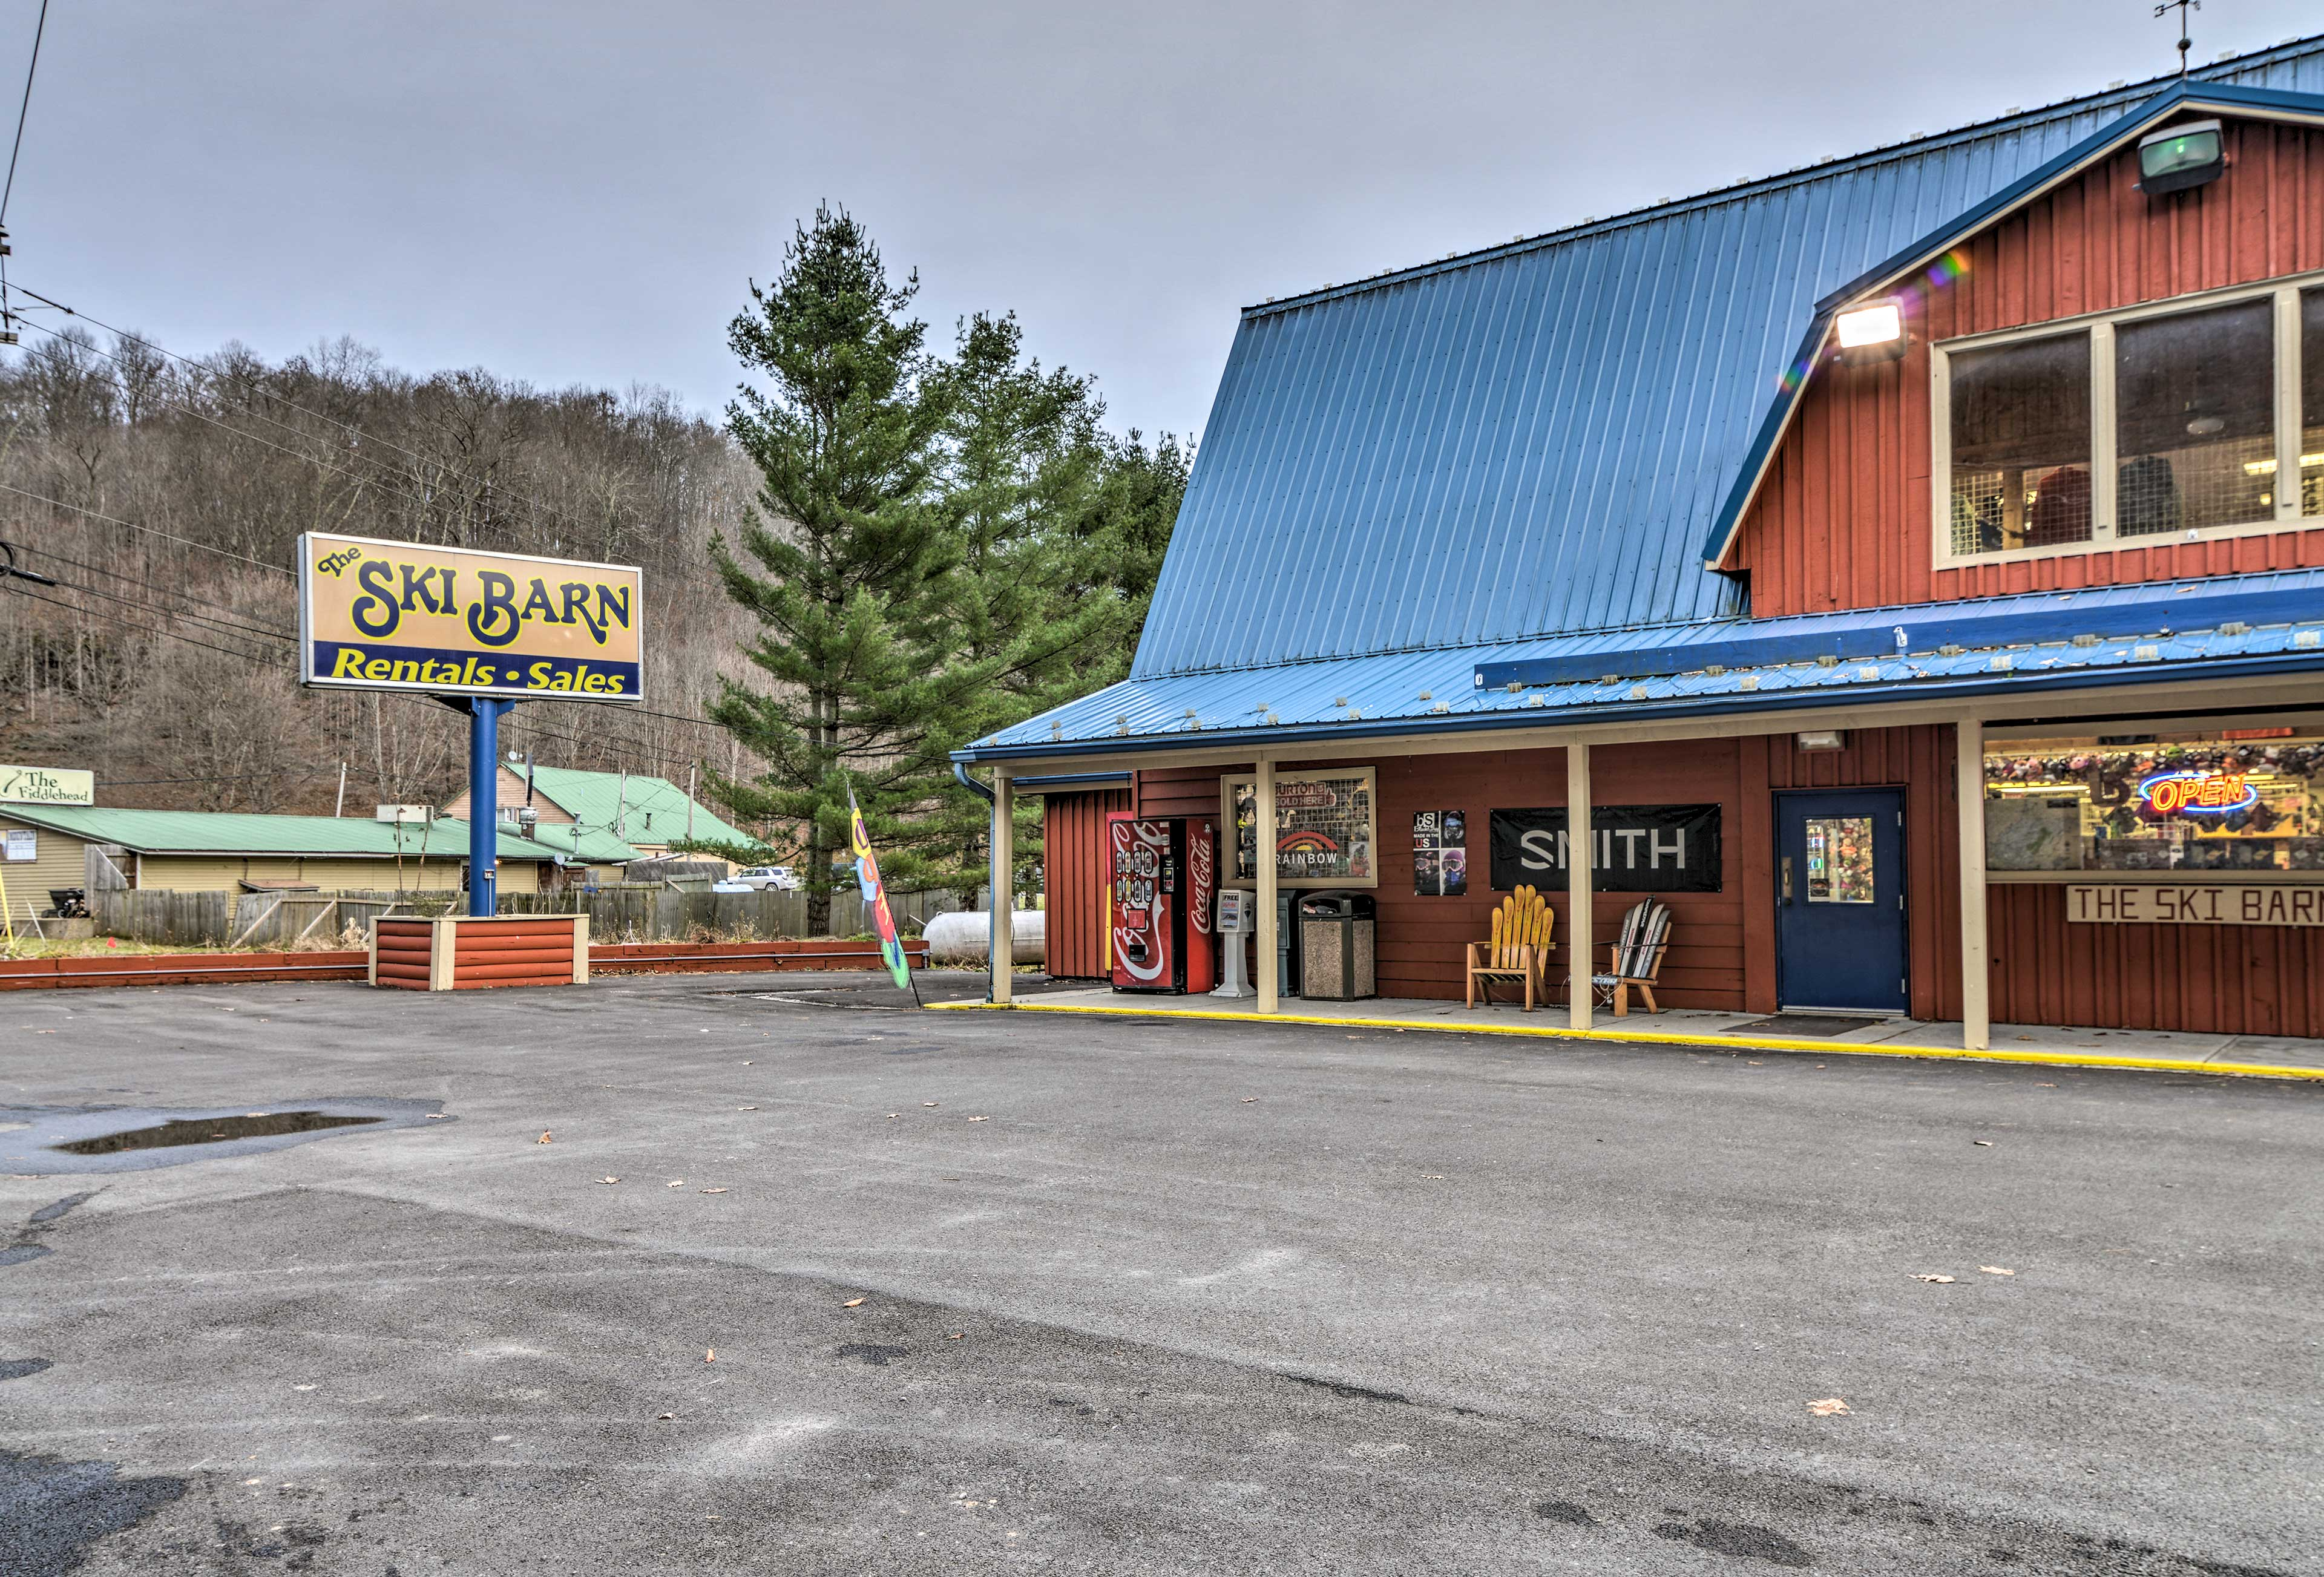 No skis? No problem! Head over to The Ski Barn for a great deal on rentals.